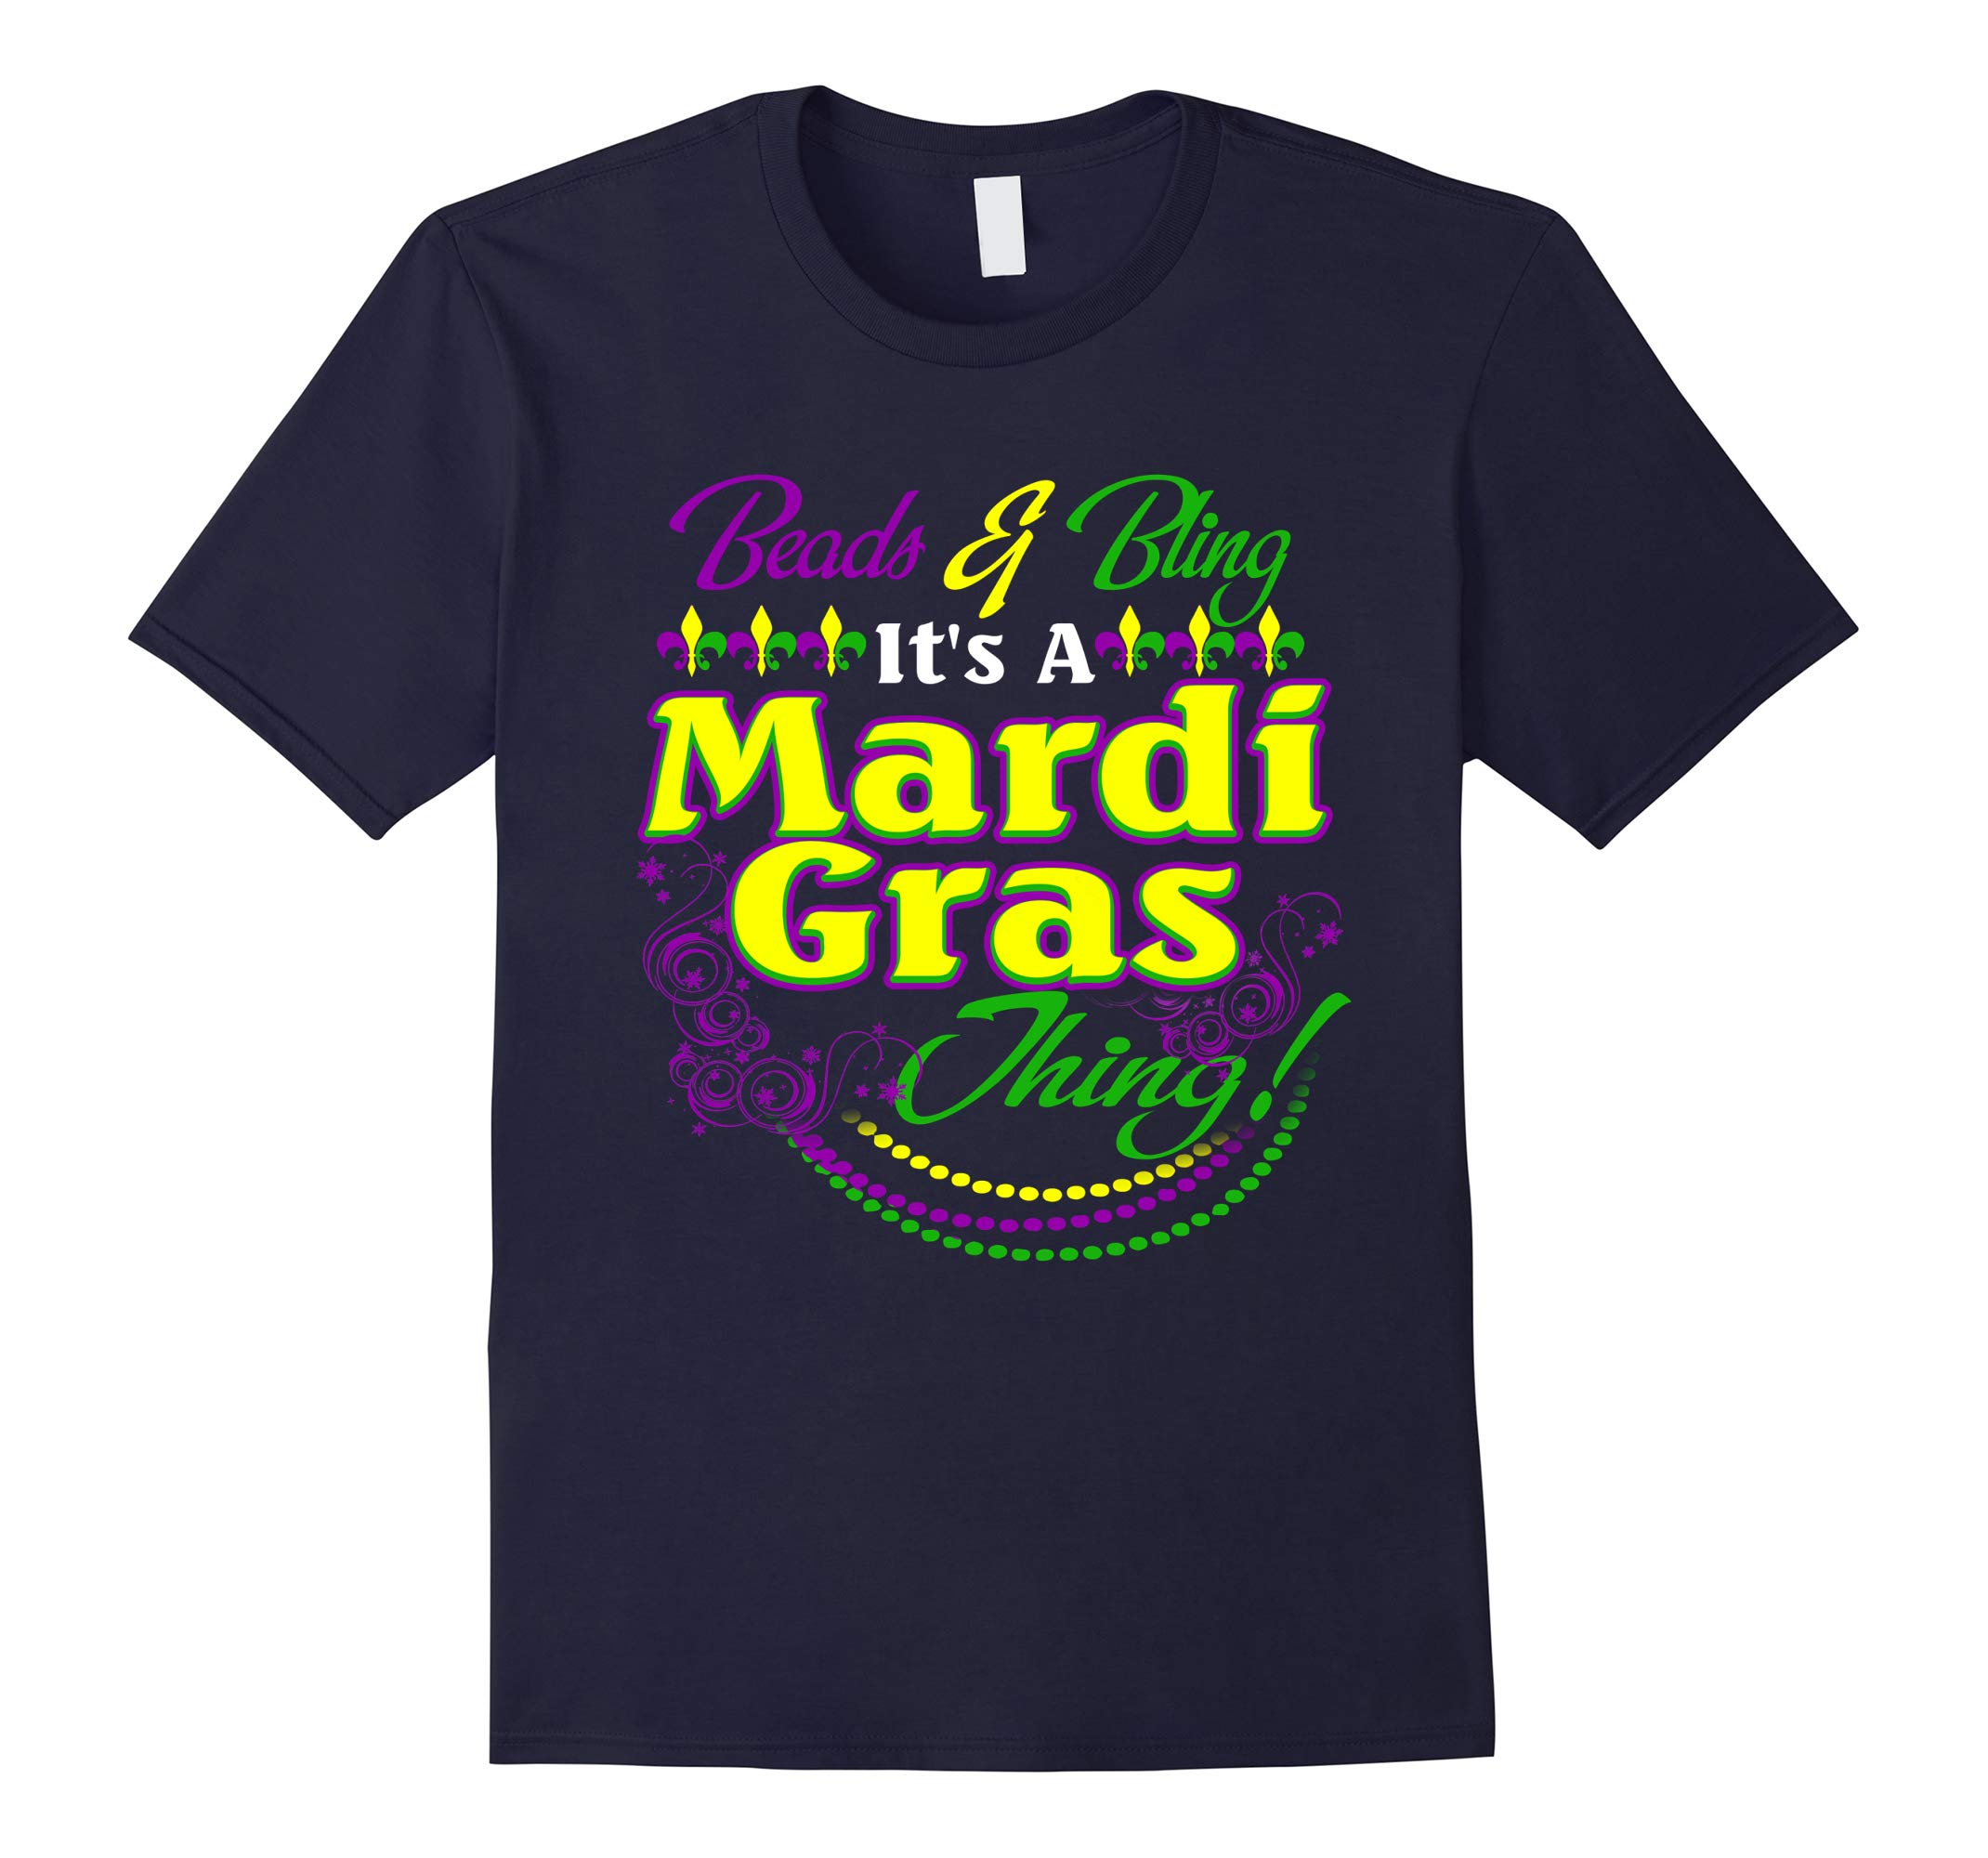 Beads and Bling Its a Mardi Gras Thing t-shirt-RT